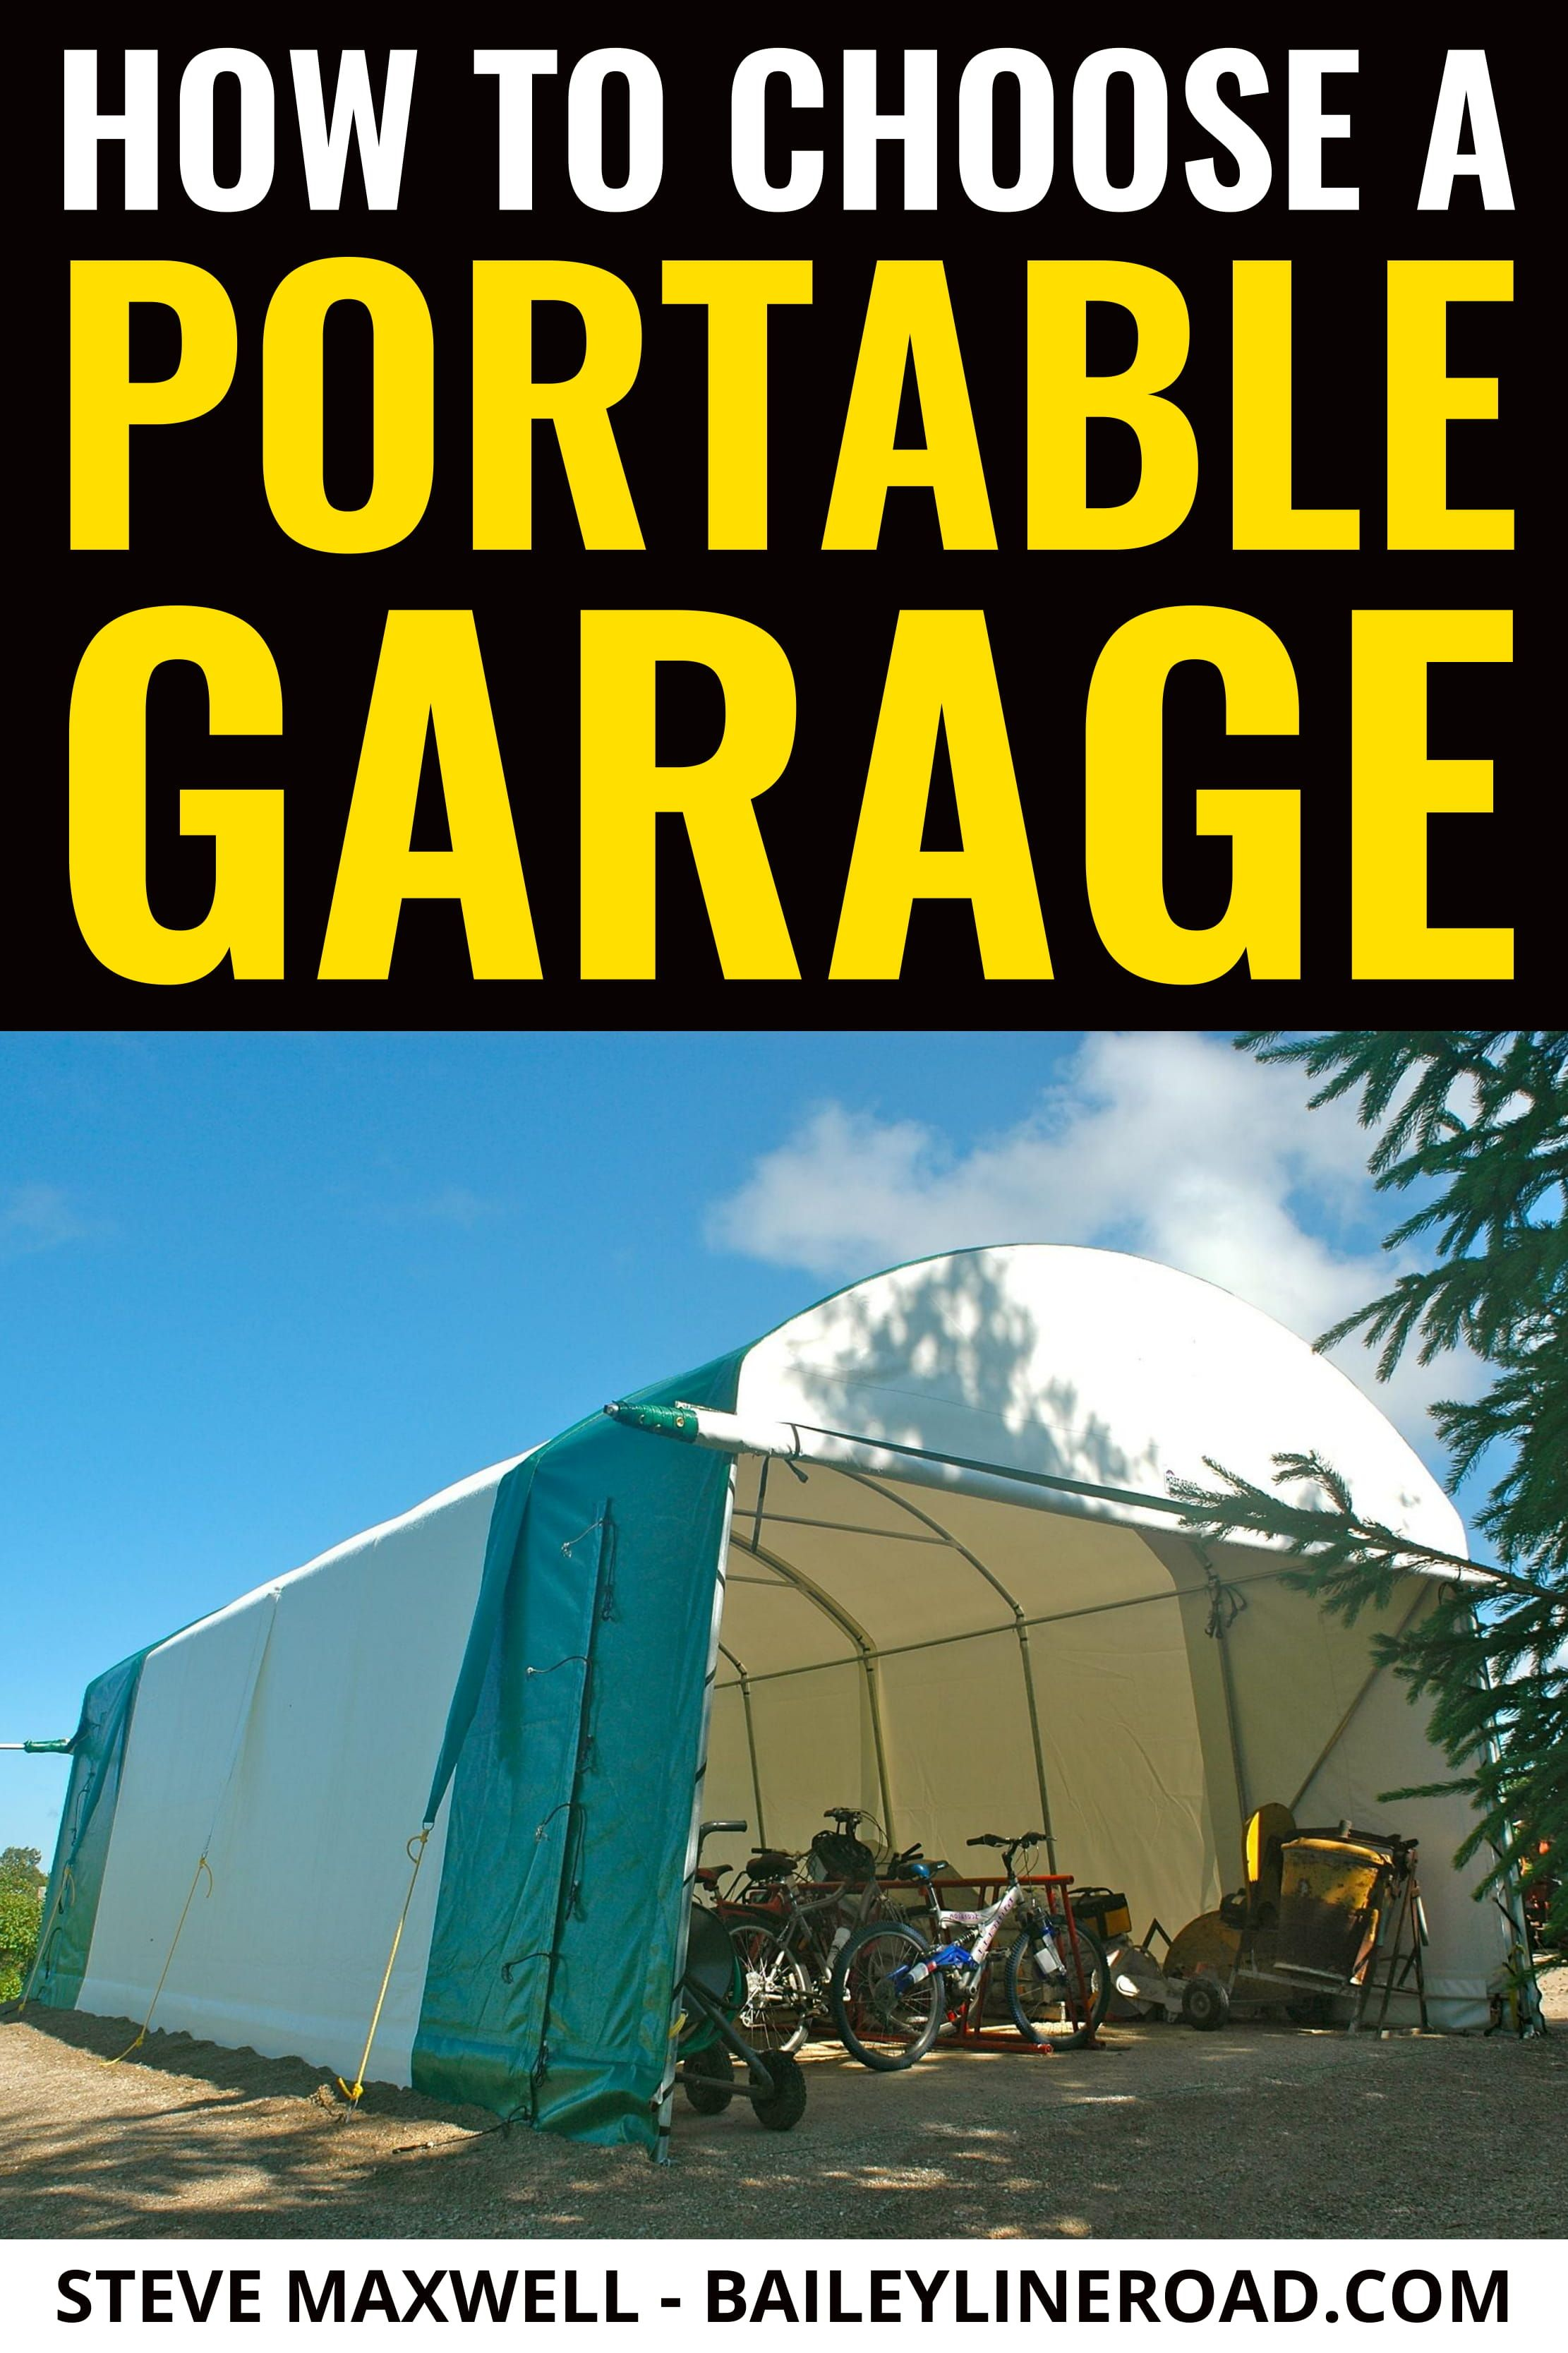 Portable Garage How To Choose Erect And Manage A Fabric